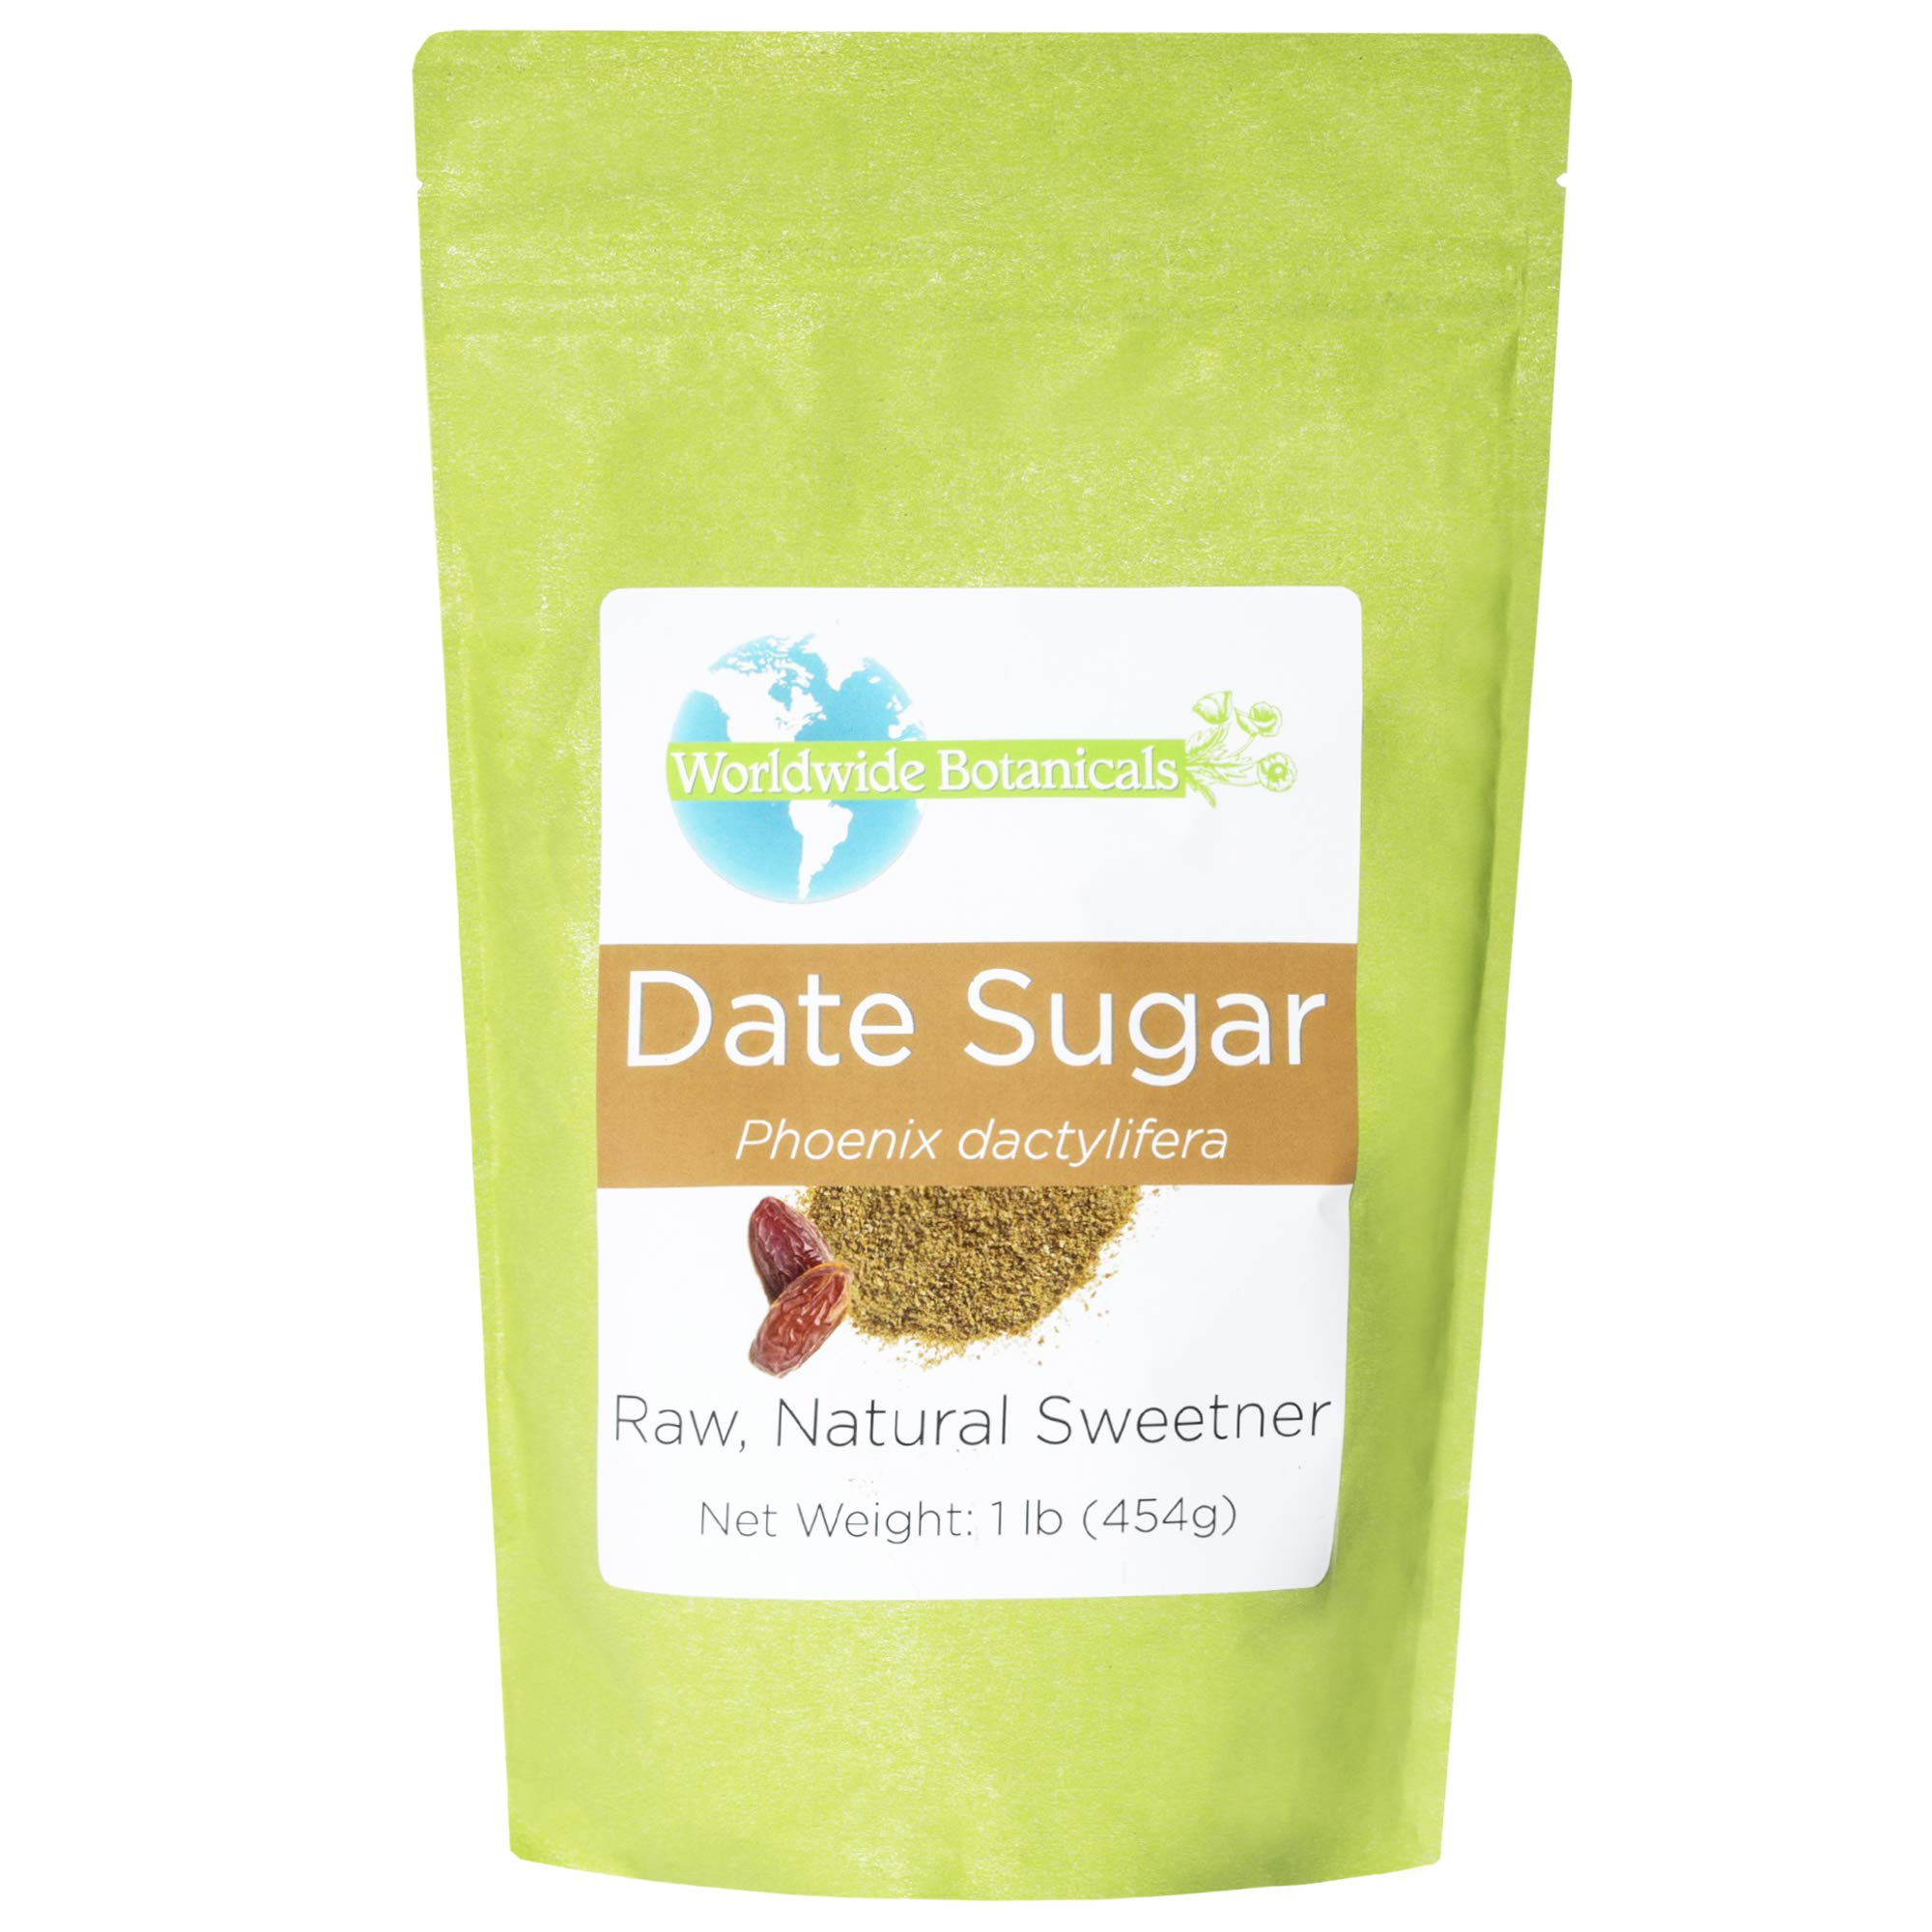 Worldwide Botanicals Organic Date Sugar, Certified Organic, 100% Pure, Natural Whole Food Sweetener, Certified Gluten-Free